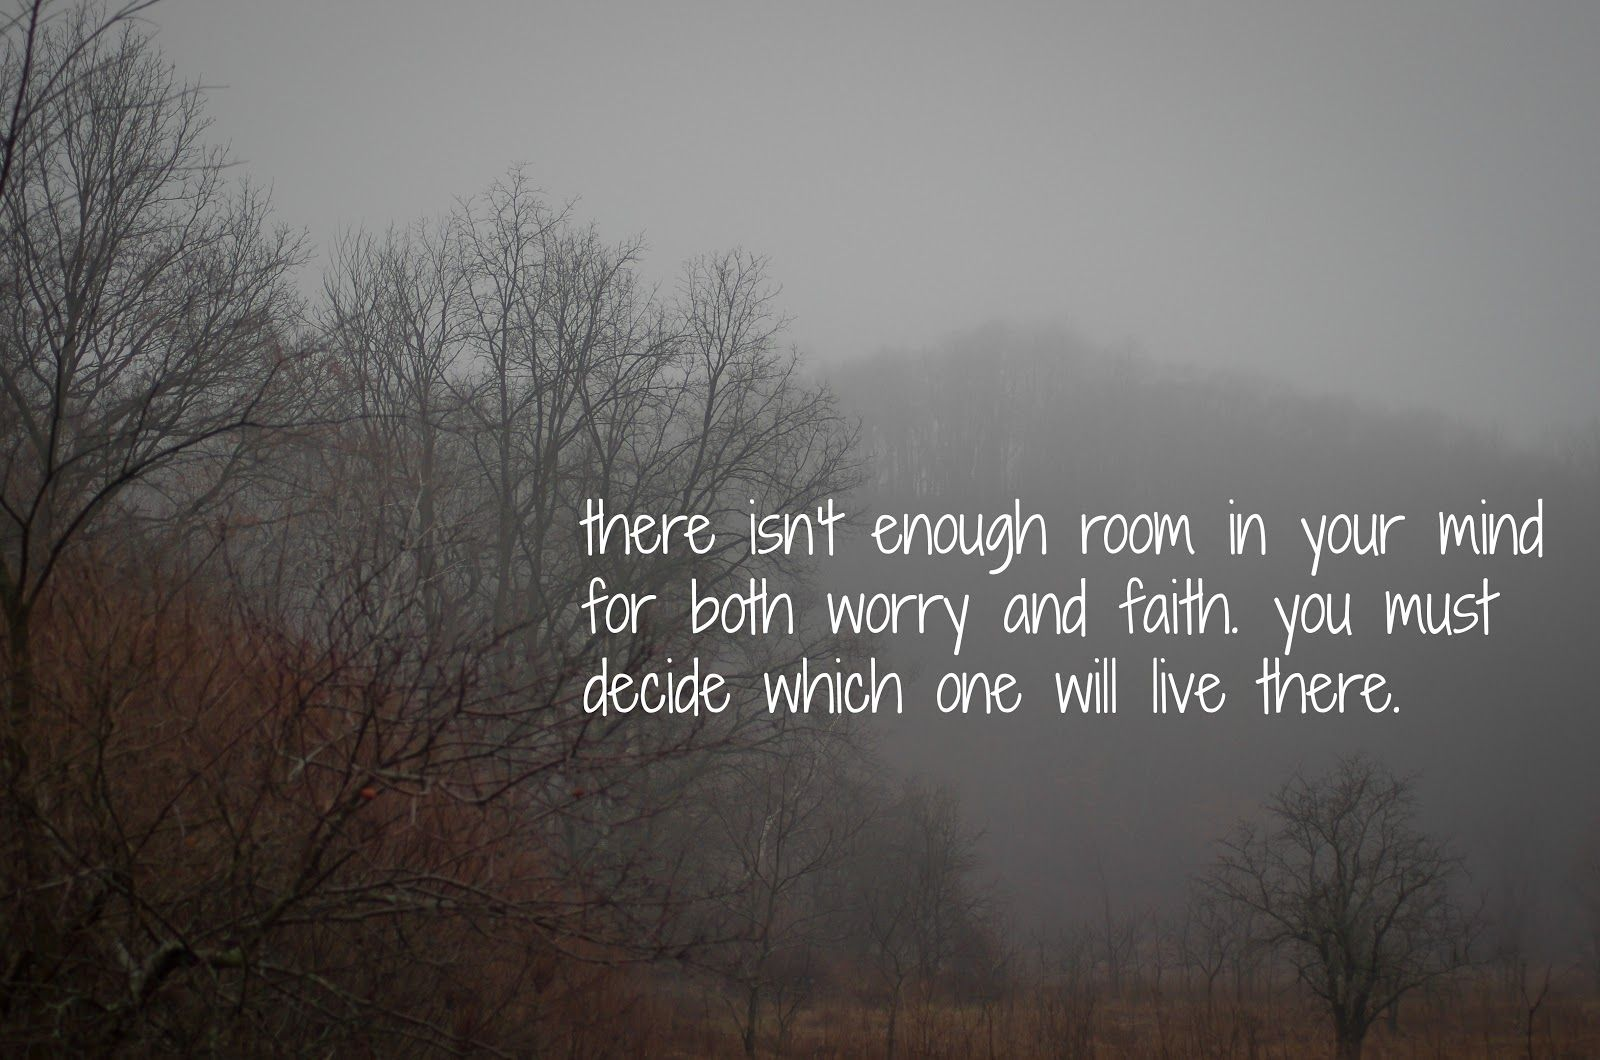 Wallpaper Love Quotes Tumblr : wallpaper quote pc tumblr - Google Search pc quotes Pinterest